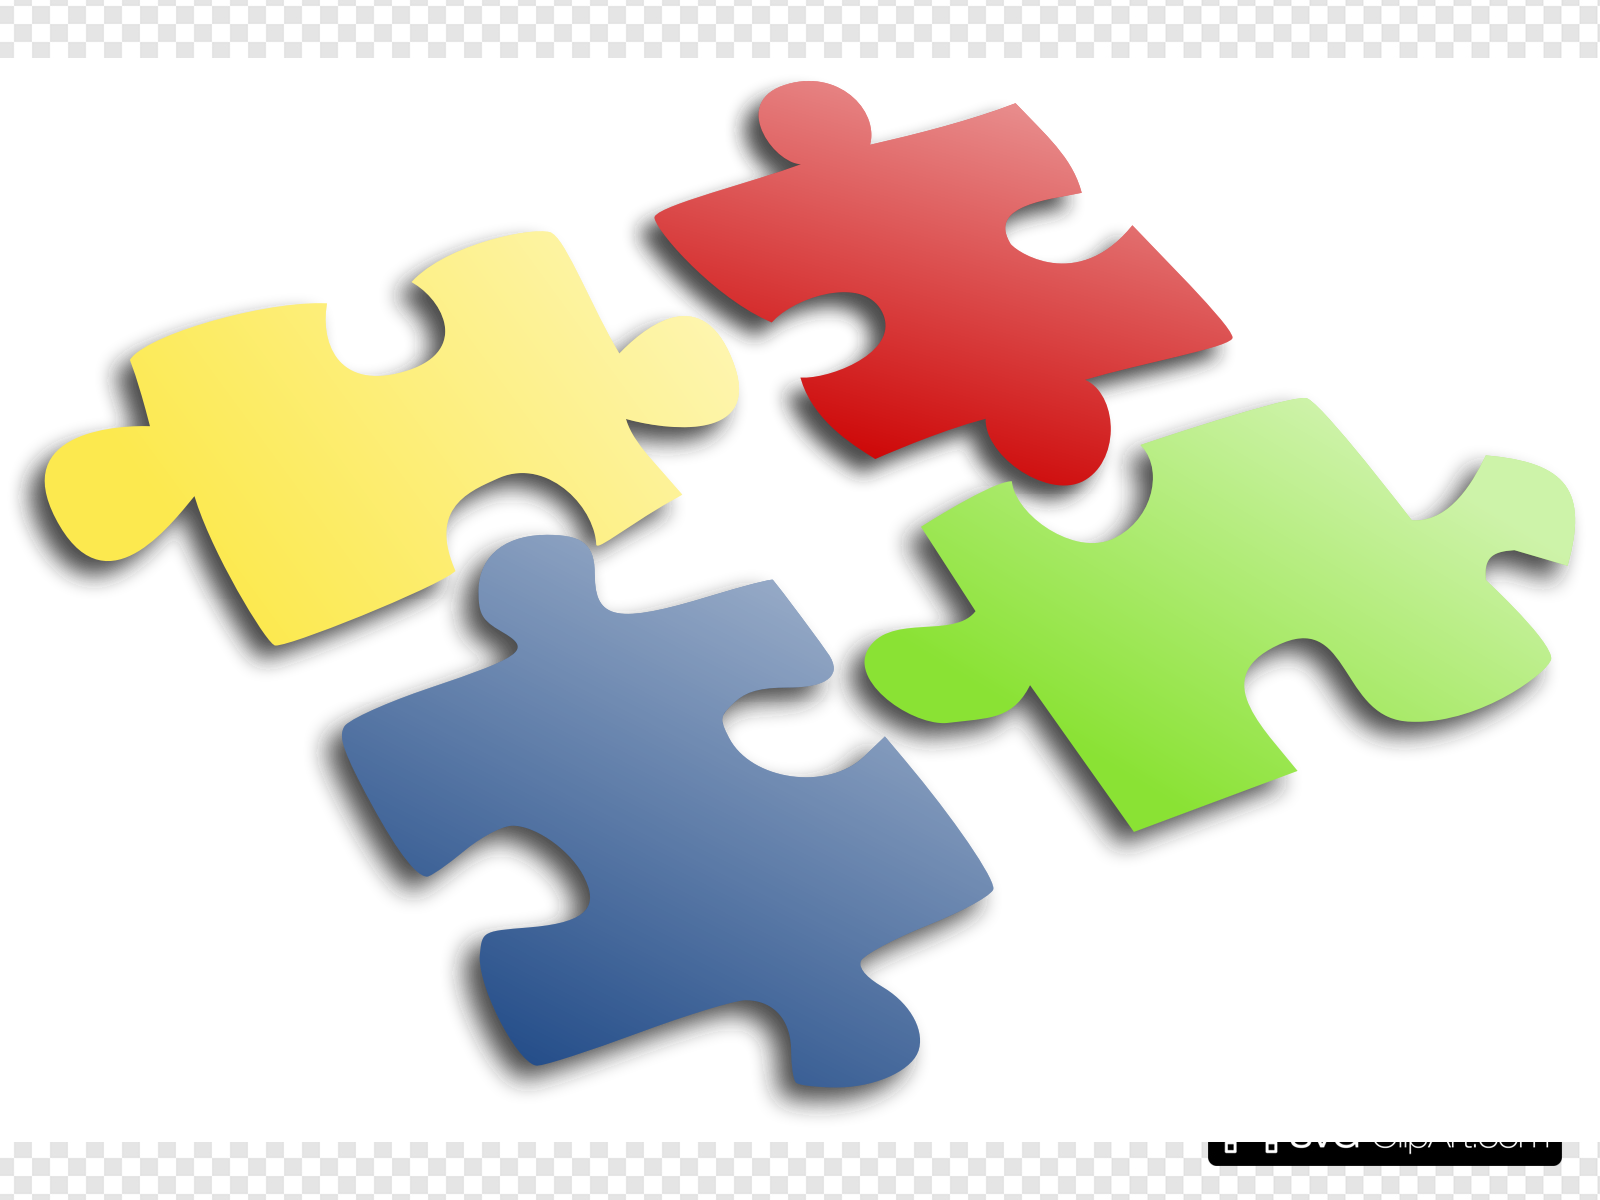 Jigsaw Puzzle Clip art, Icon and SVG.